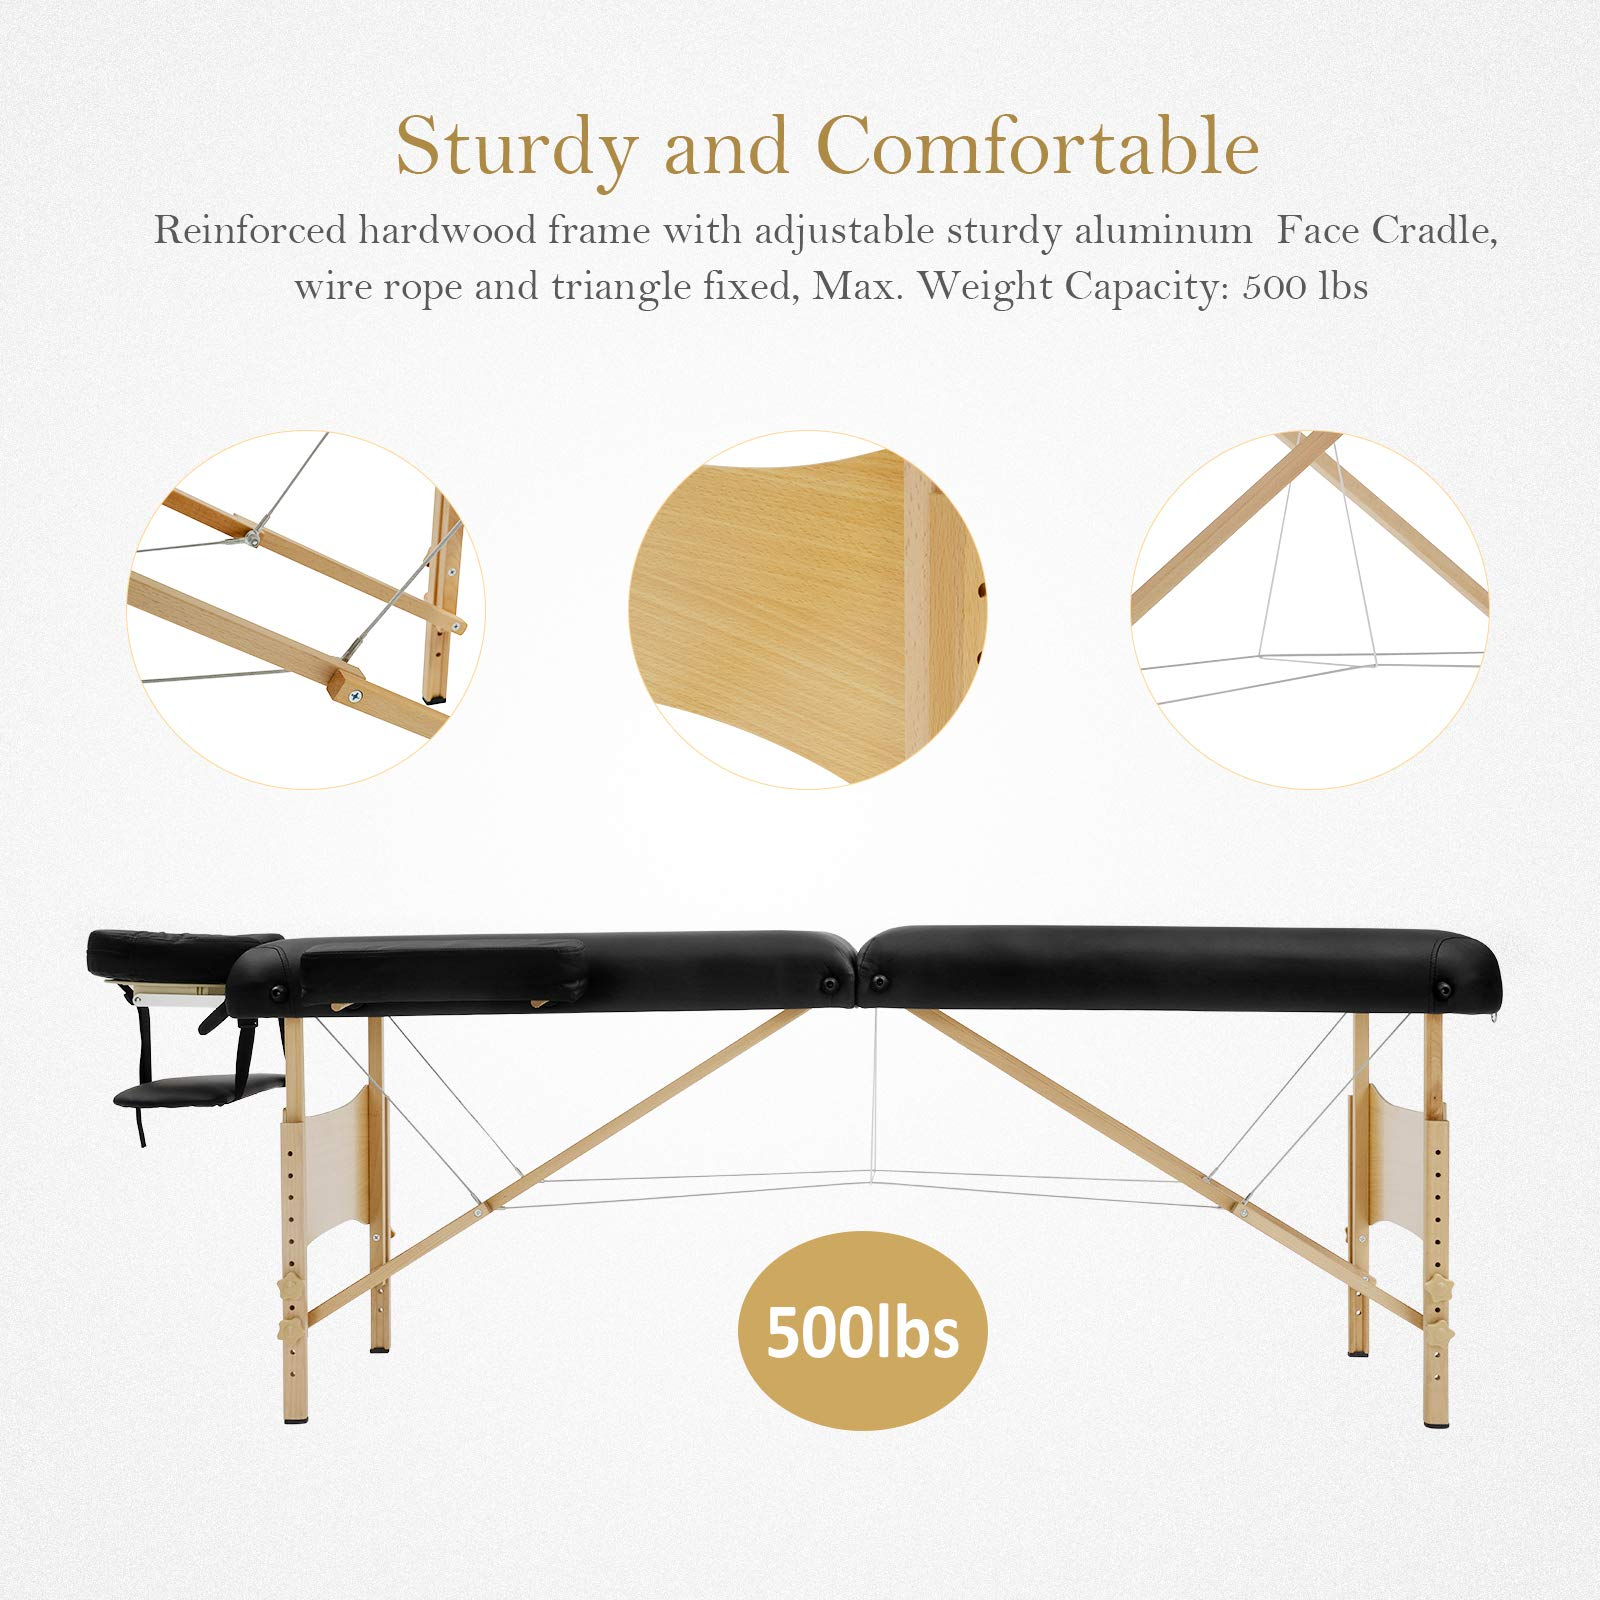 Uenjoy Massage Table 84'' Professional Folding Massage Bed Deluxe Model with Extra Width, Ultra-thick Sponge, PU Leather Surface & Additional Accessories, 2 Fold, Black by Uenjoy (Image #5)